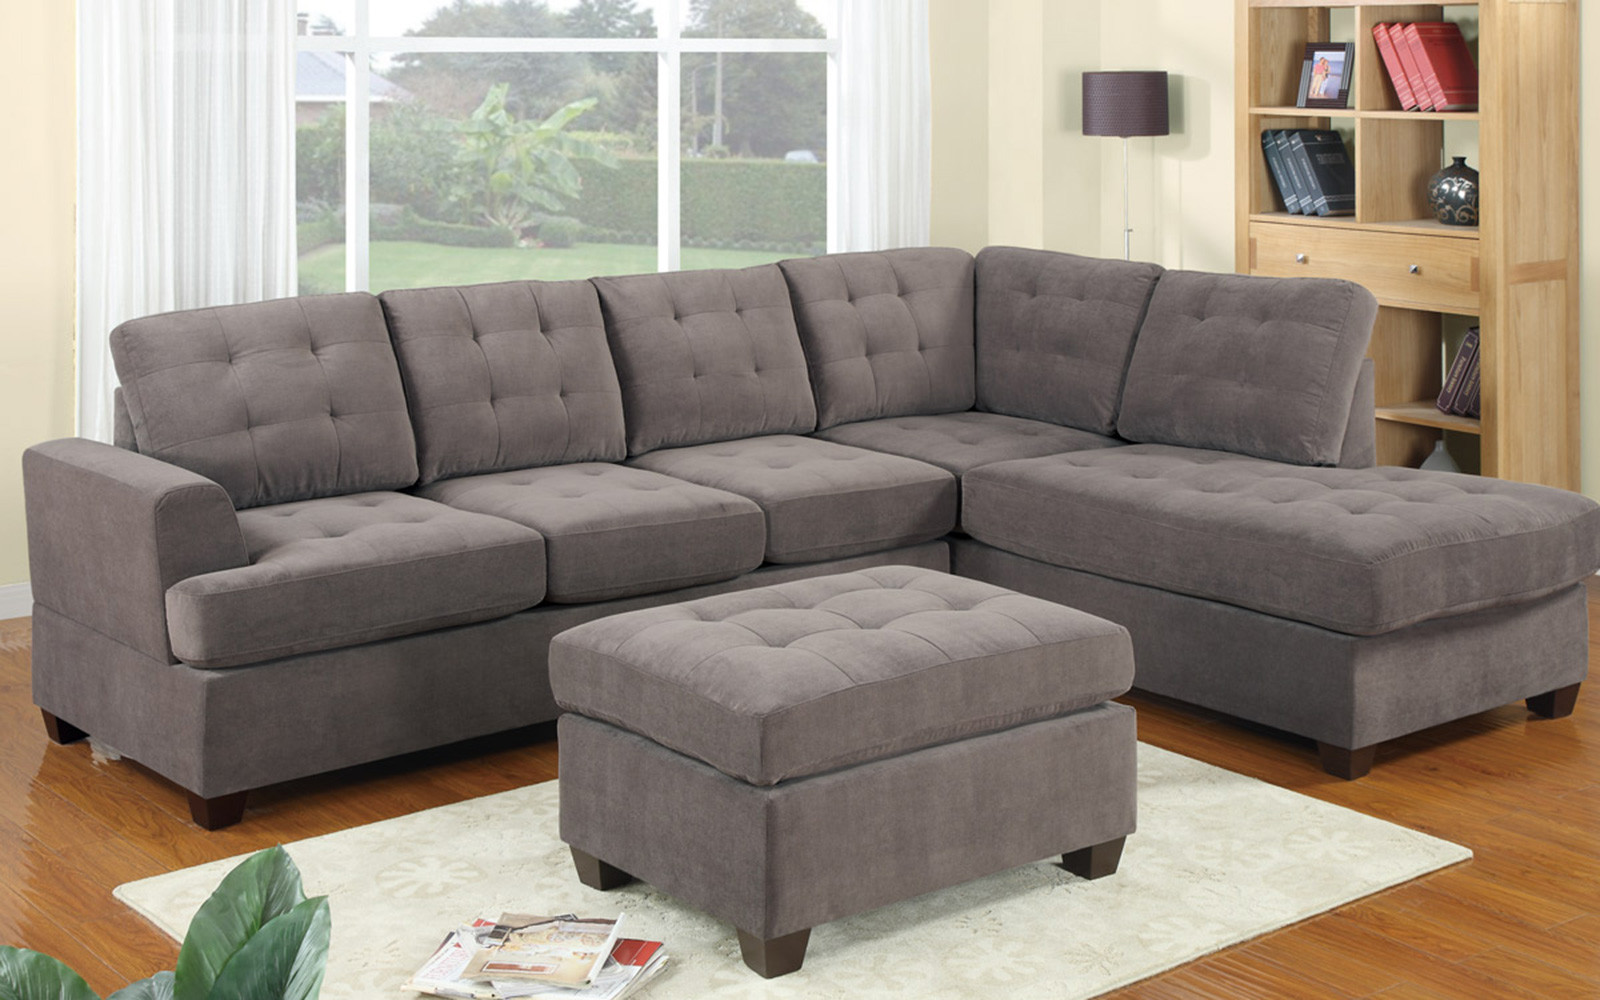 Elegant 2 Piece Modern Reversible Grey Tufted Microfiber Sectional Sofa With Ottoman